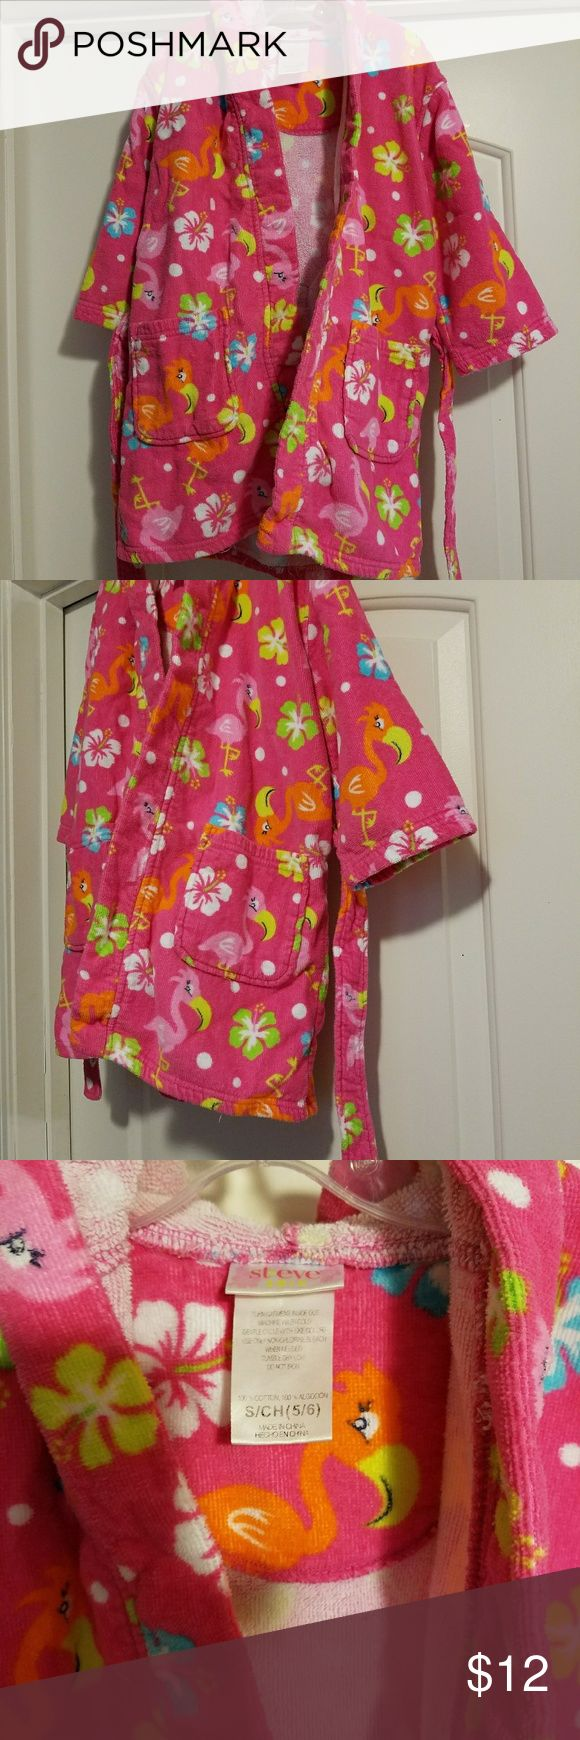 Small Child's Swim Tropical Print Robe How cute is this! Size small 5 child's. Used, but excellent condition. Adorable fun print! #childsswimrobe #childsswimwear #swimwear #bathrobe #childsbathroom #ocean #swim #bathfun Swim Coverups